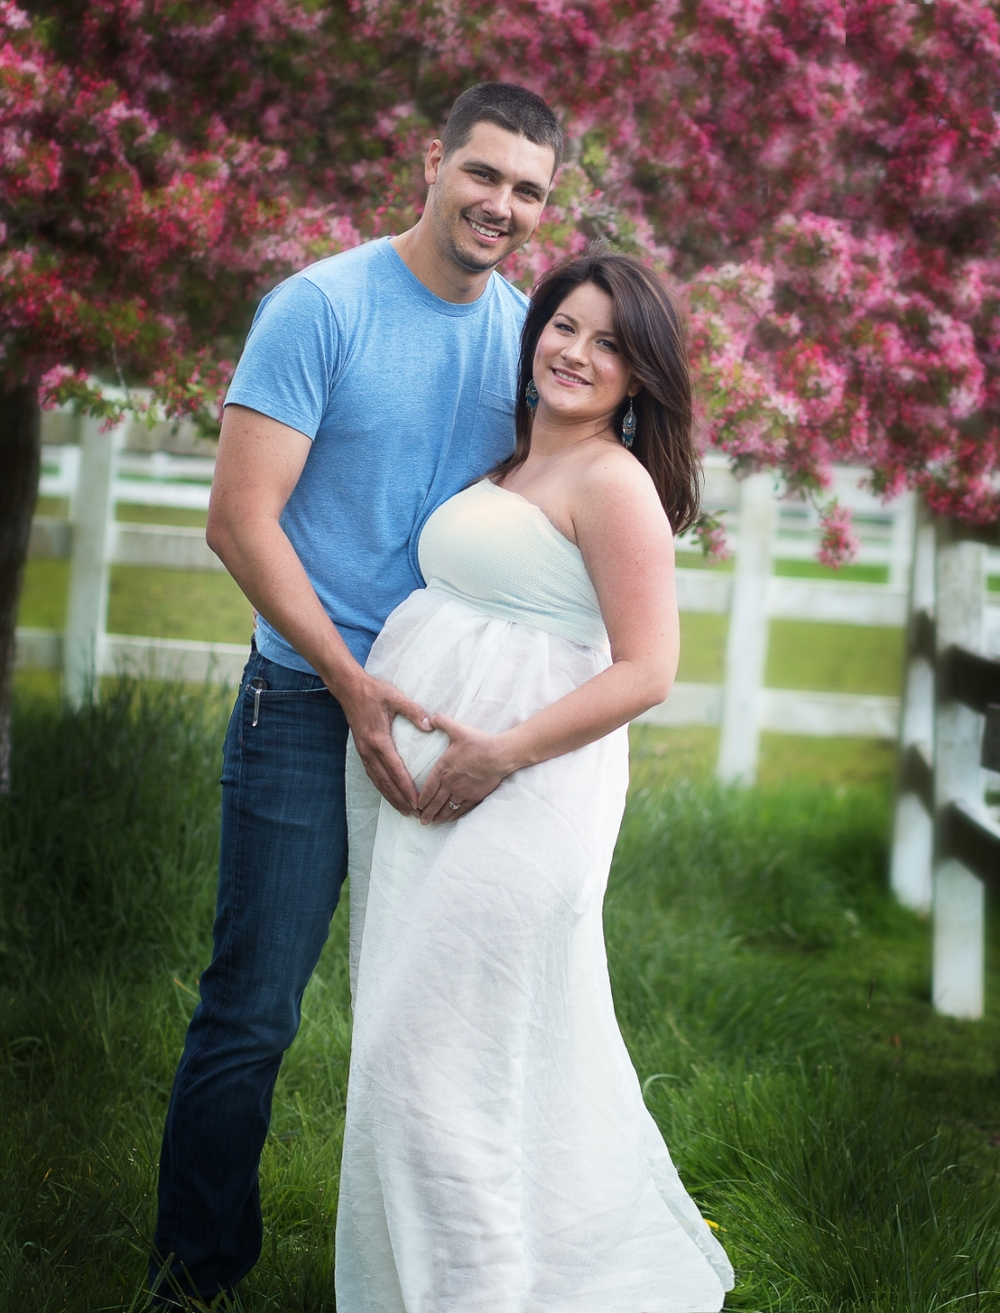 maternity photography outdoors couple